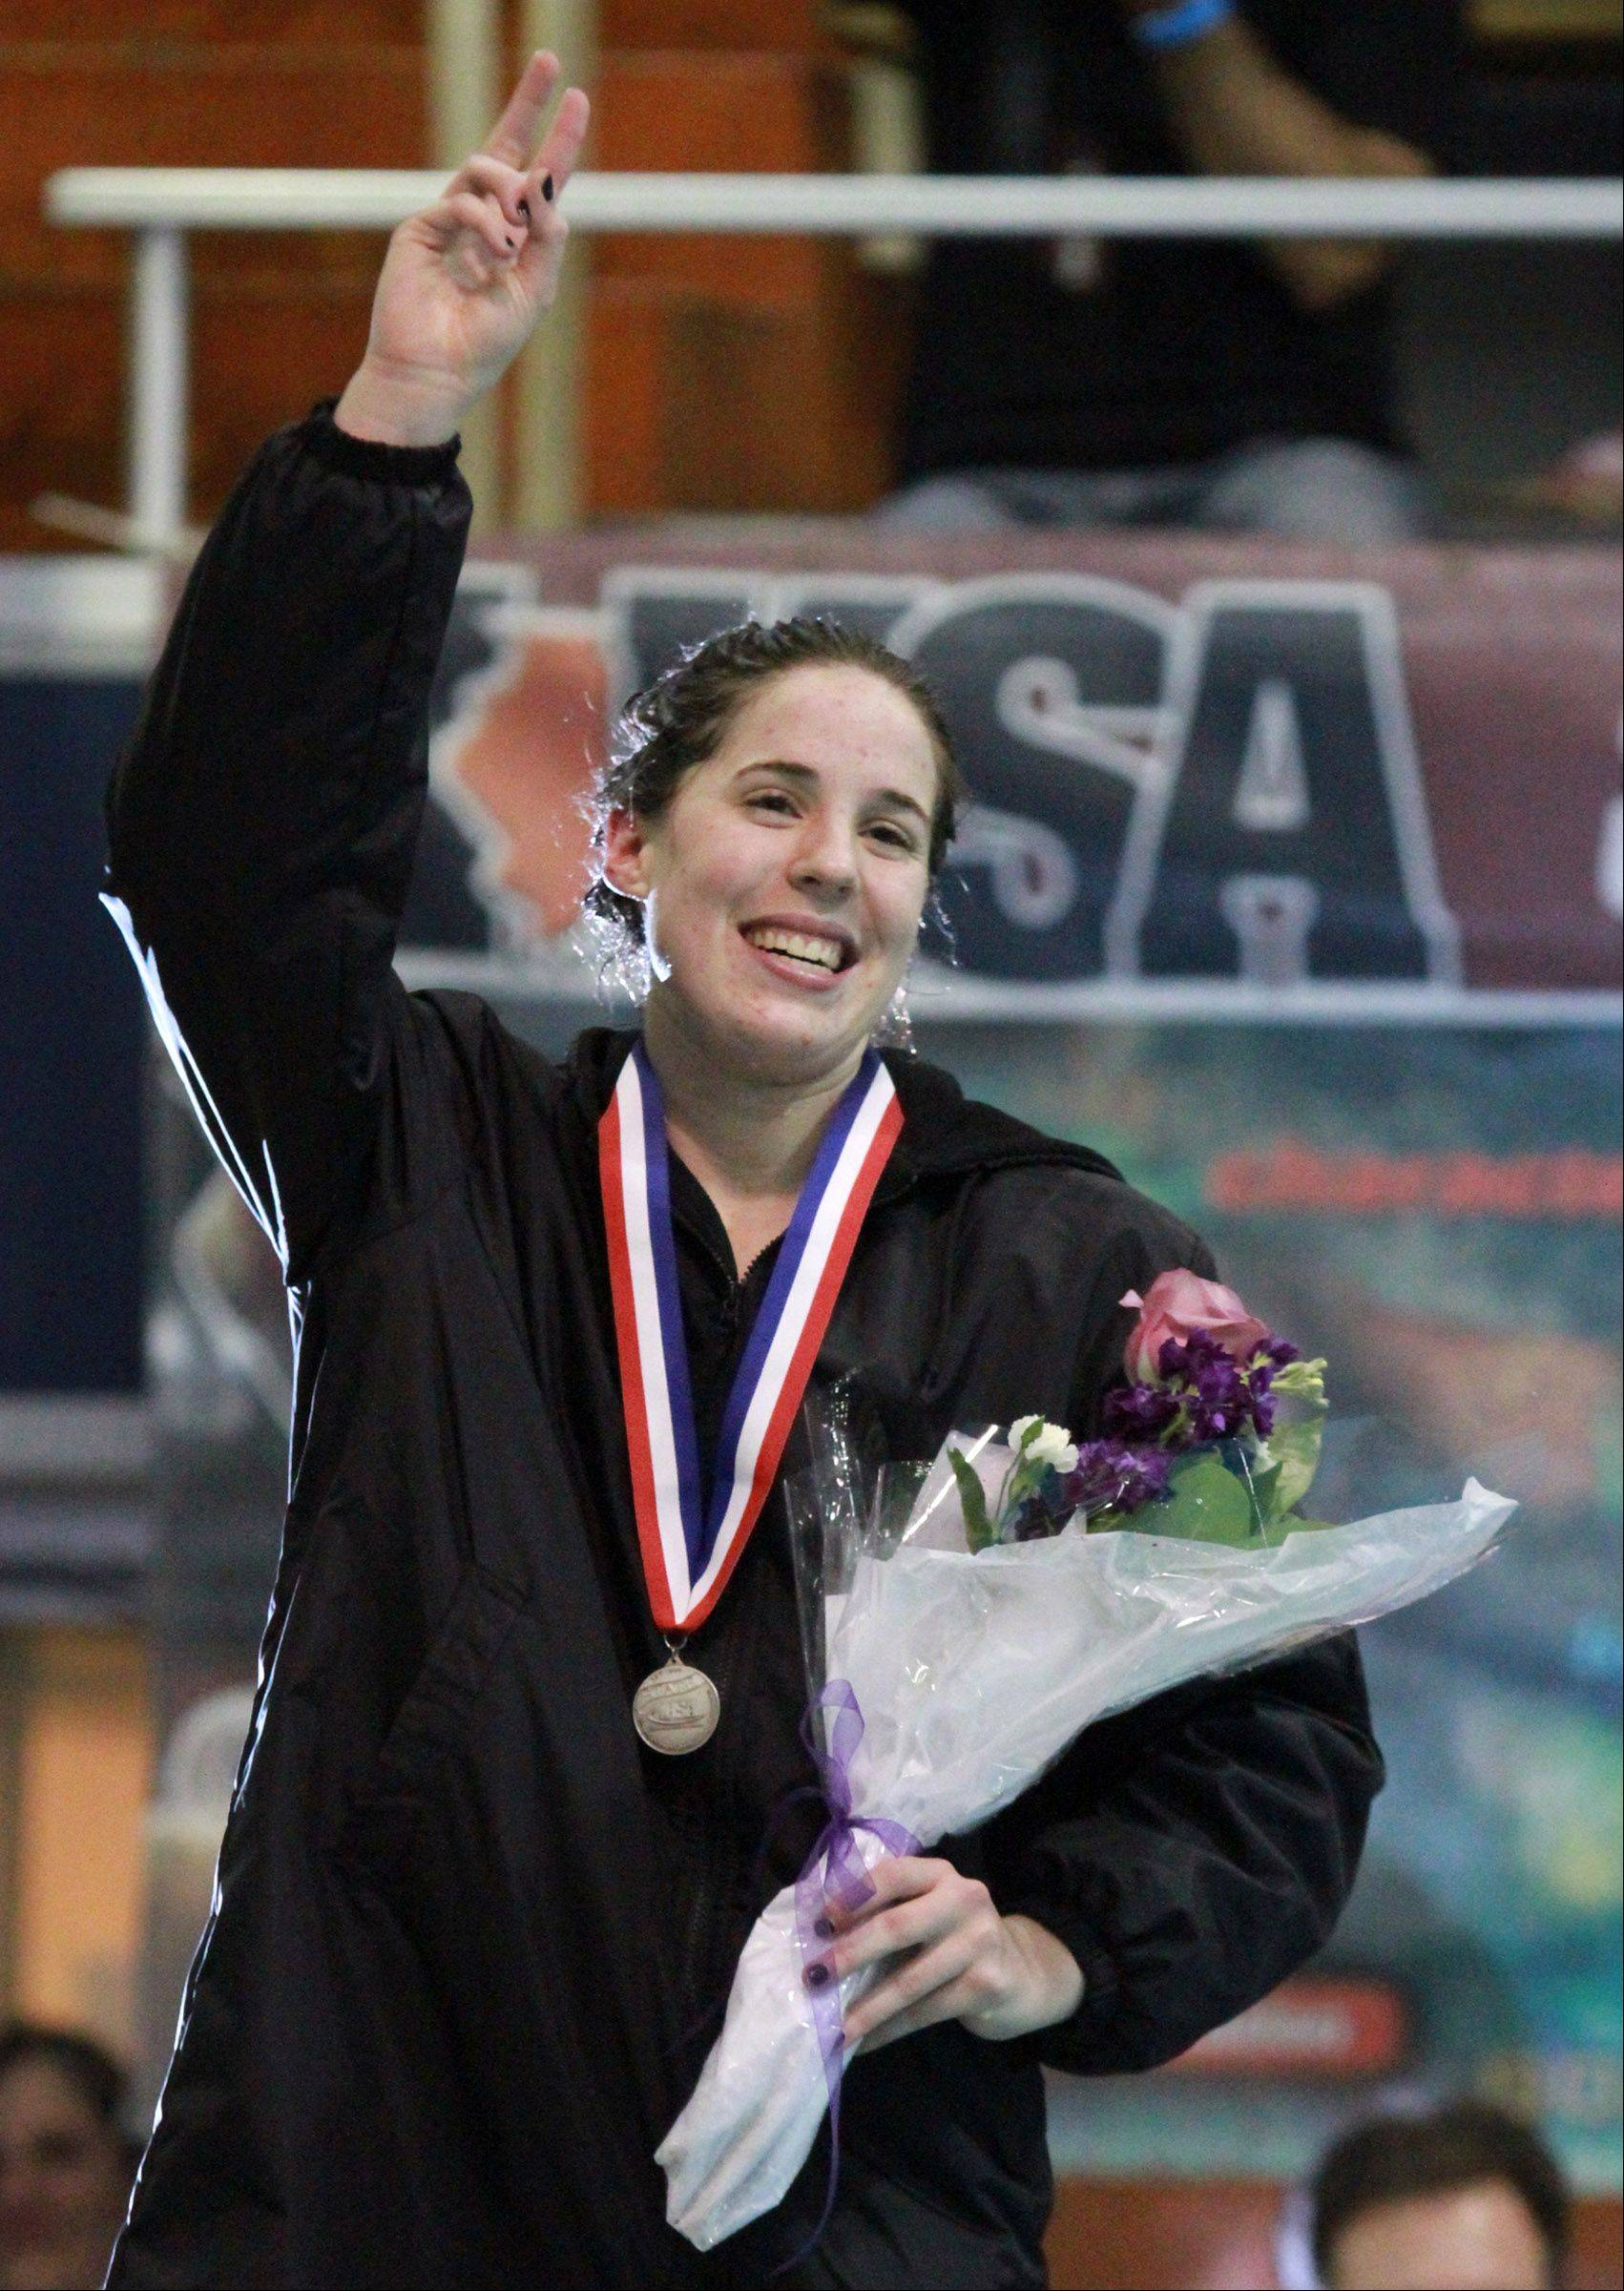 Downers Grove North's placed second in the 100-yard backstroke at the IHSA state championships in Evanston on Saturday.